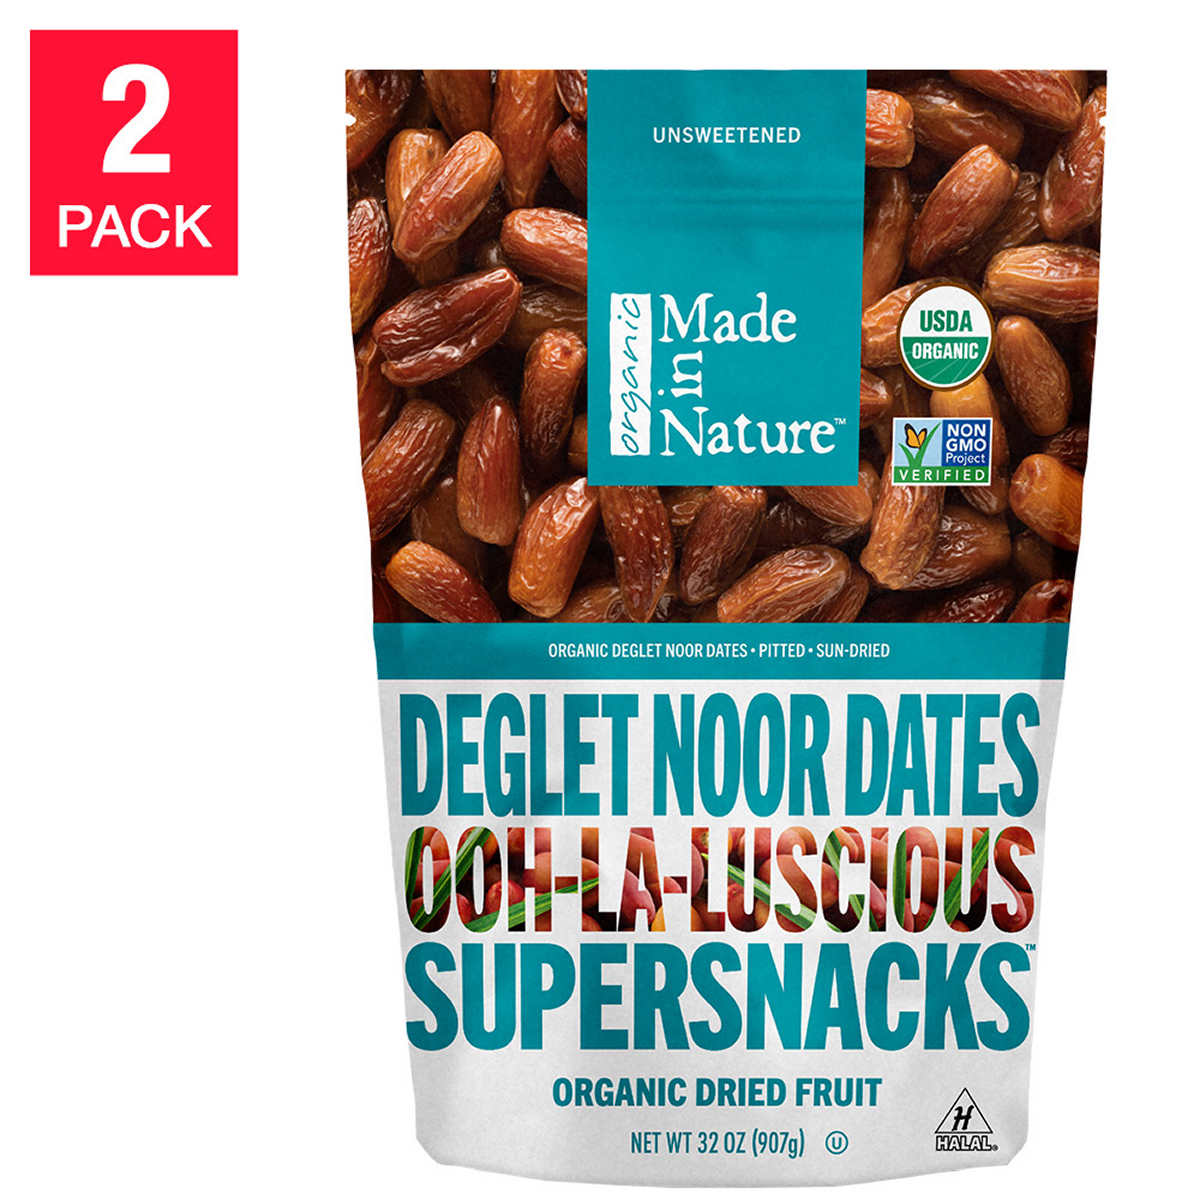 Made In Nature Organic Dried Fruit 1 oz, 72-pack